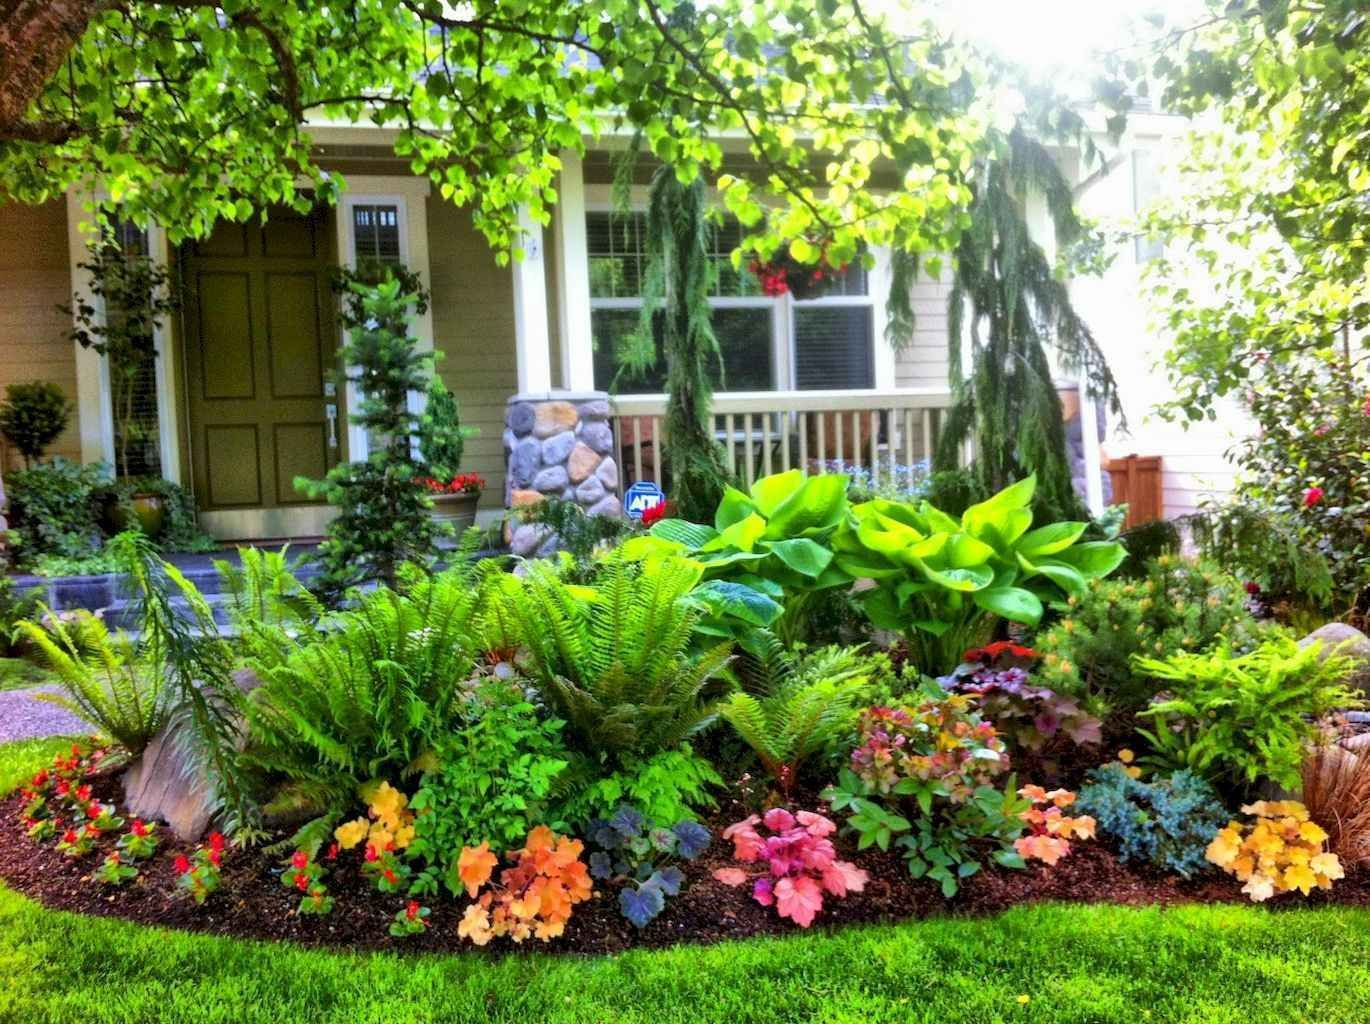 25 Beautiful Front Yard Landscaping Ideas On A Budget 4 Shade Garden Design Porch Landscaping Front Yard Landscaping Design